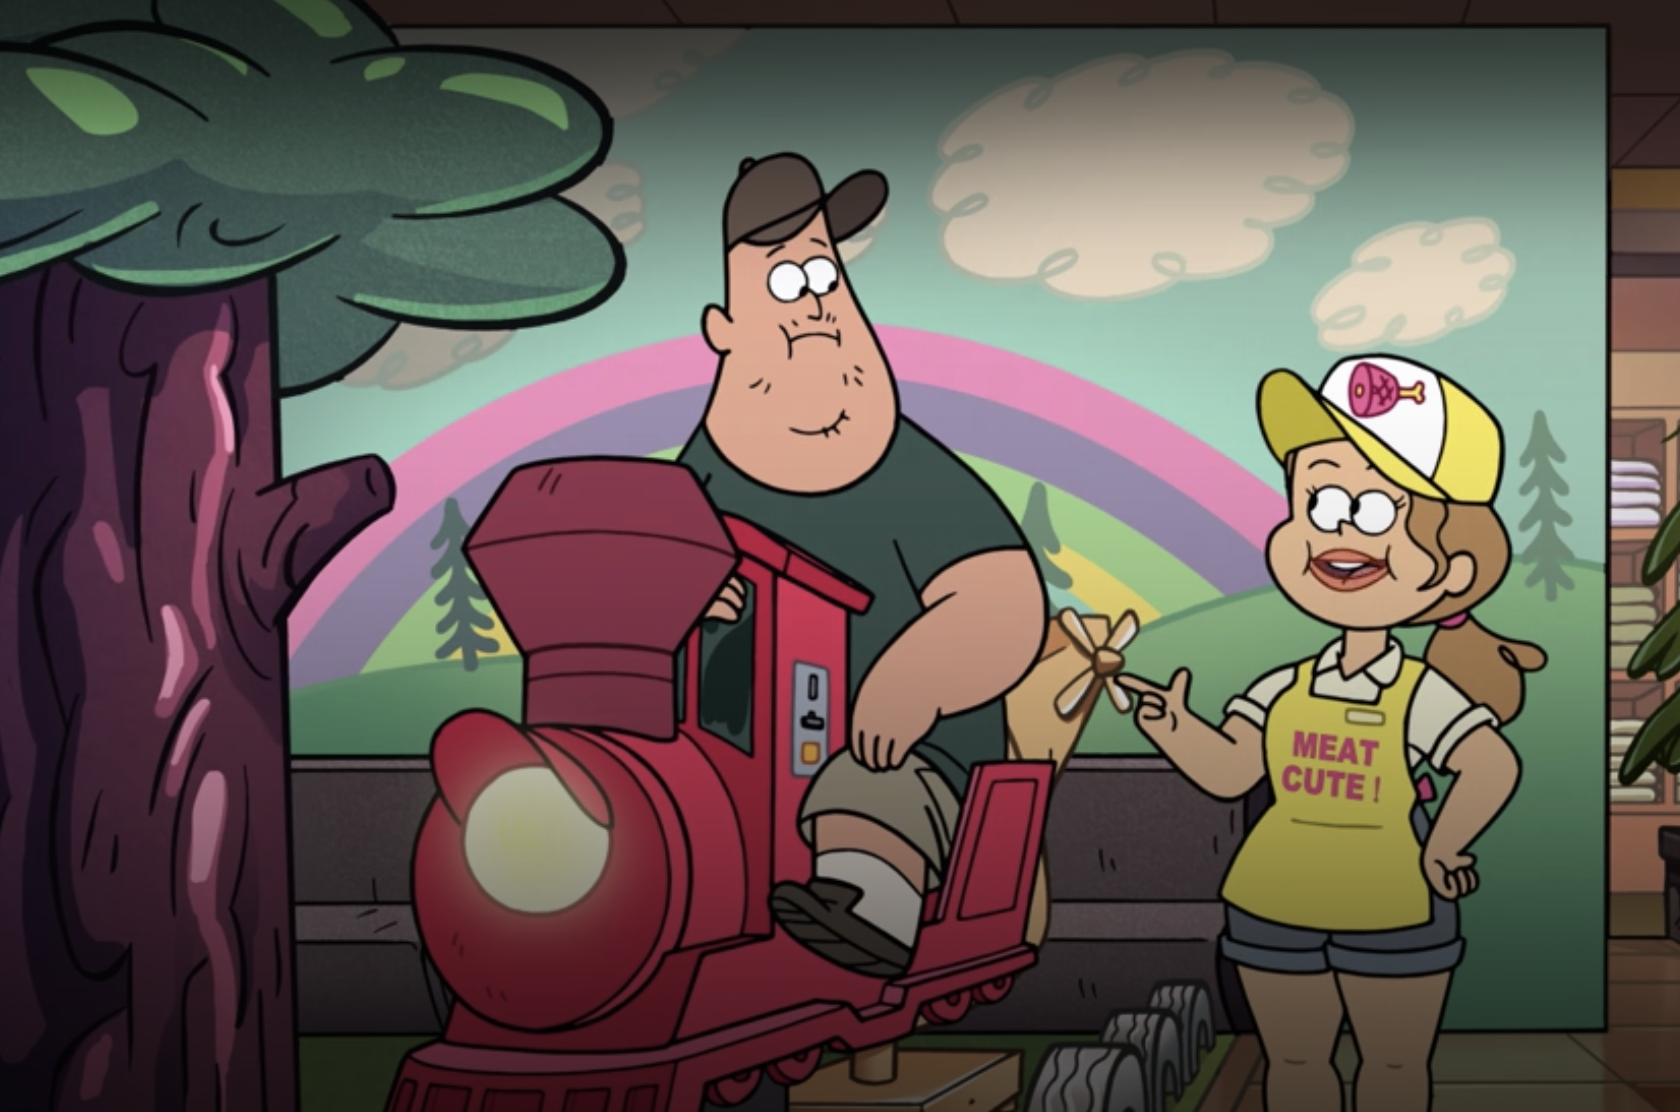 Soos talking to a girl in a Meat Cute uniform